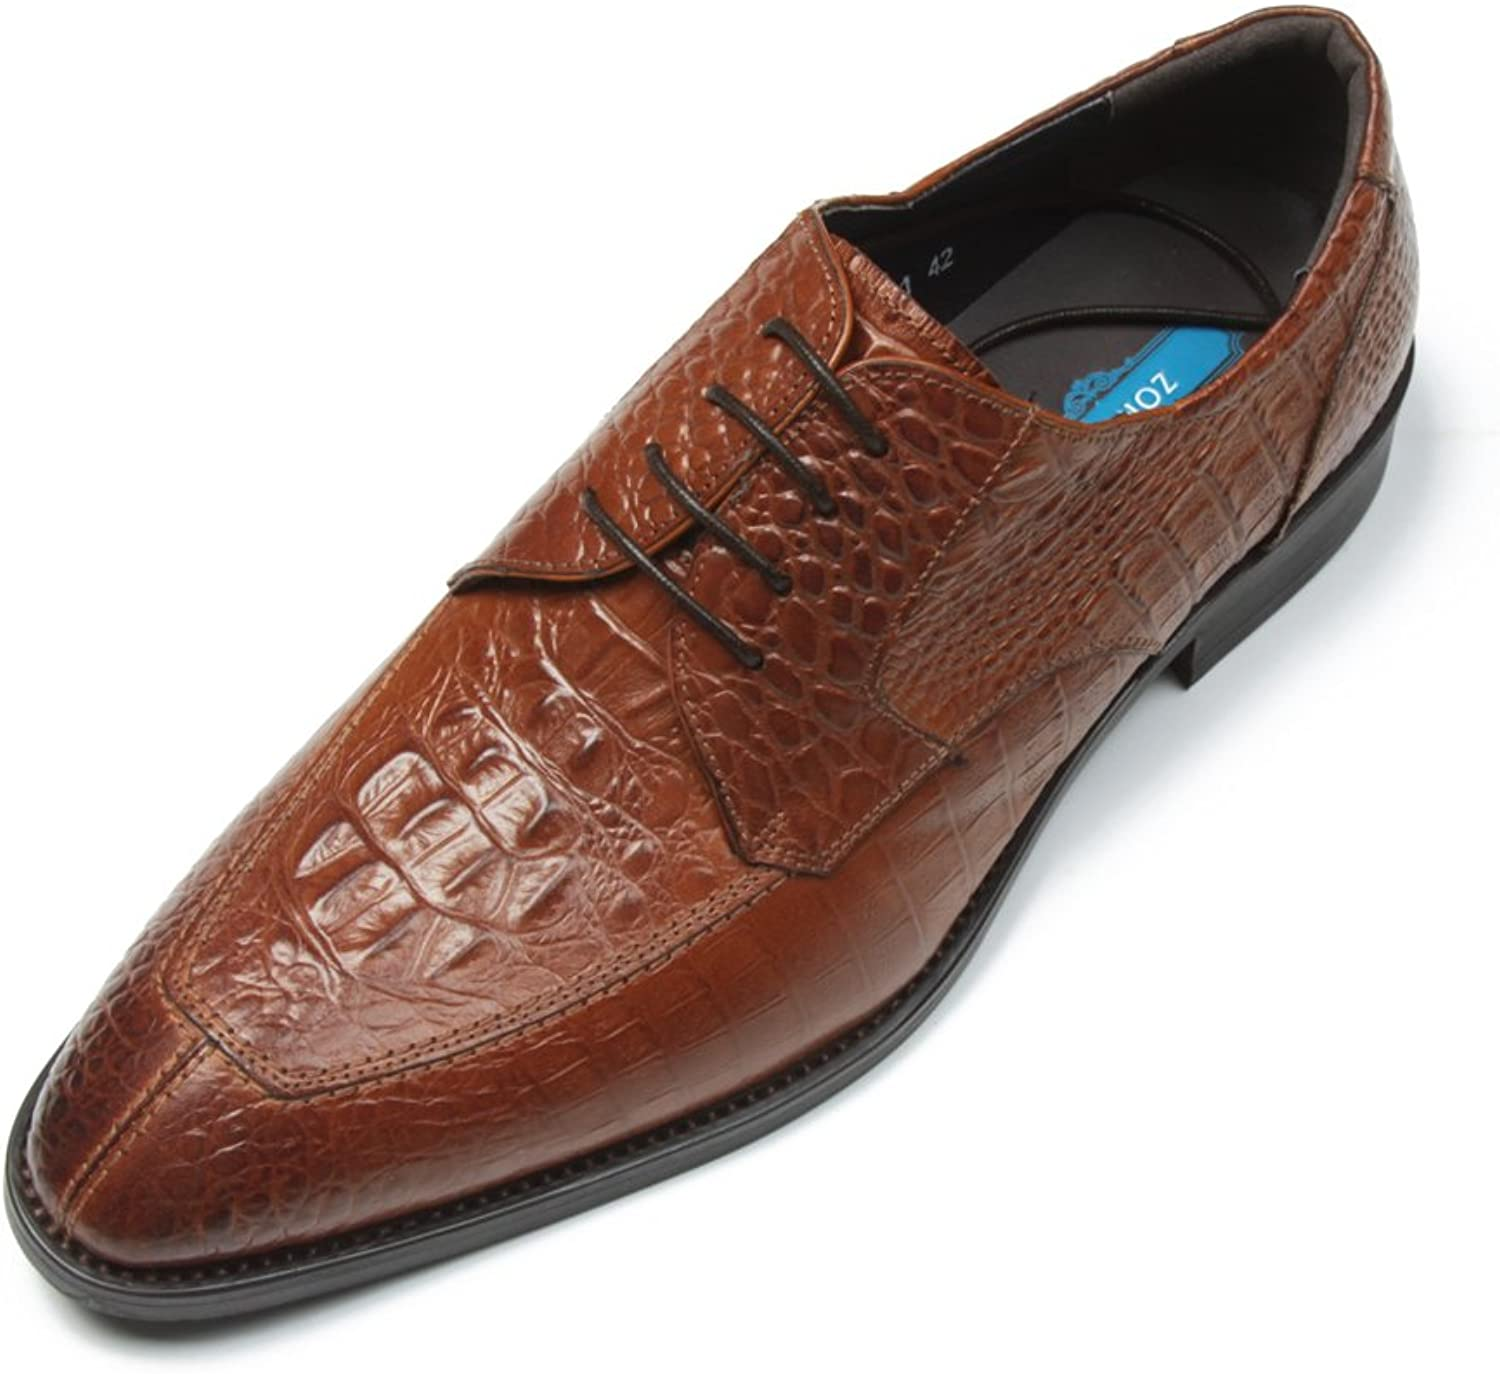 Zorgen Men's Genuine Leather shoes Rubber Sole Embossed Leather Dress Wedding Formal shoes Brown color